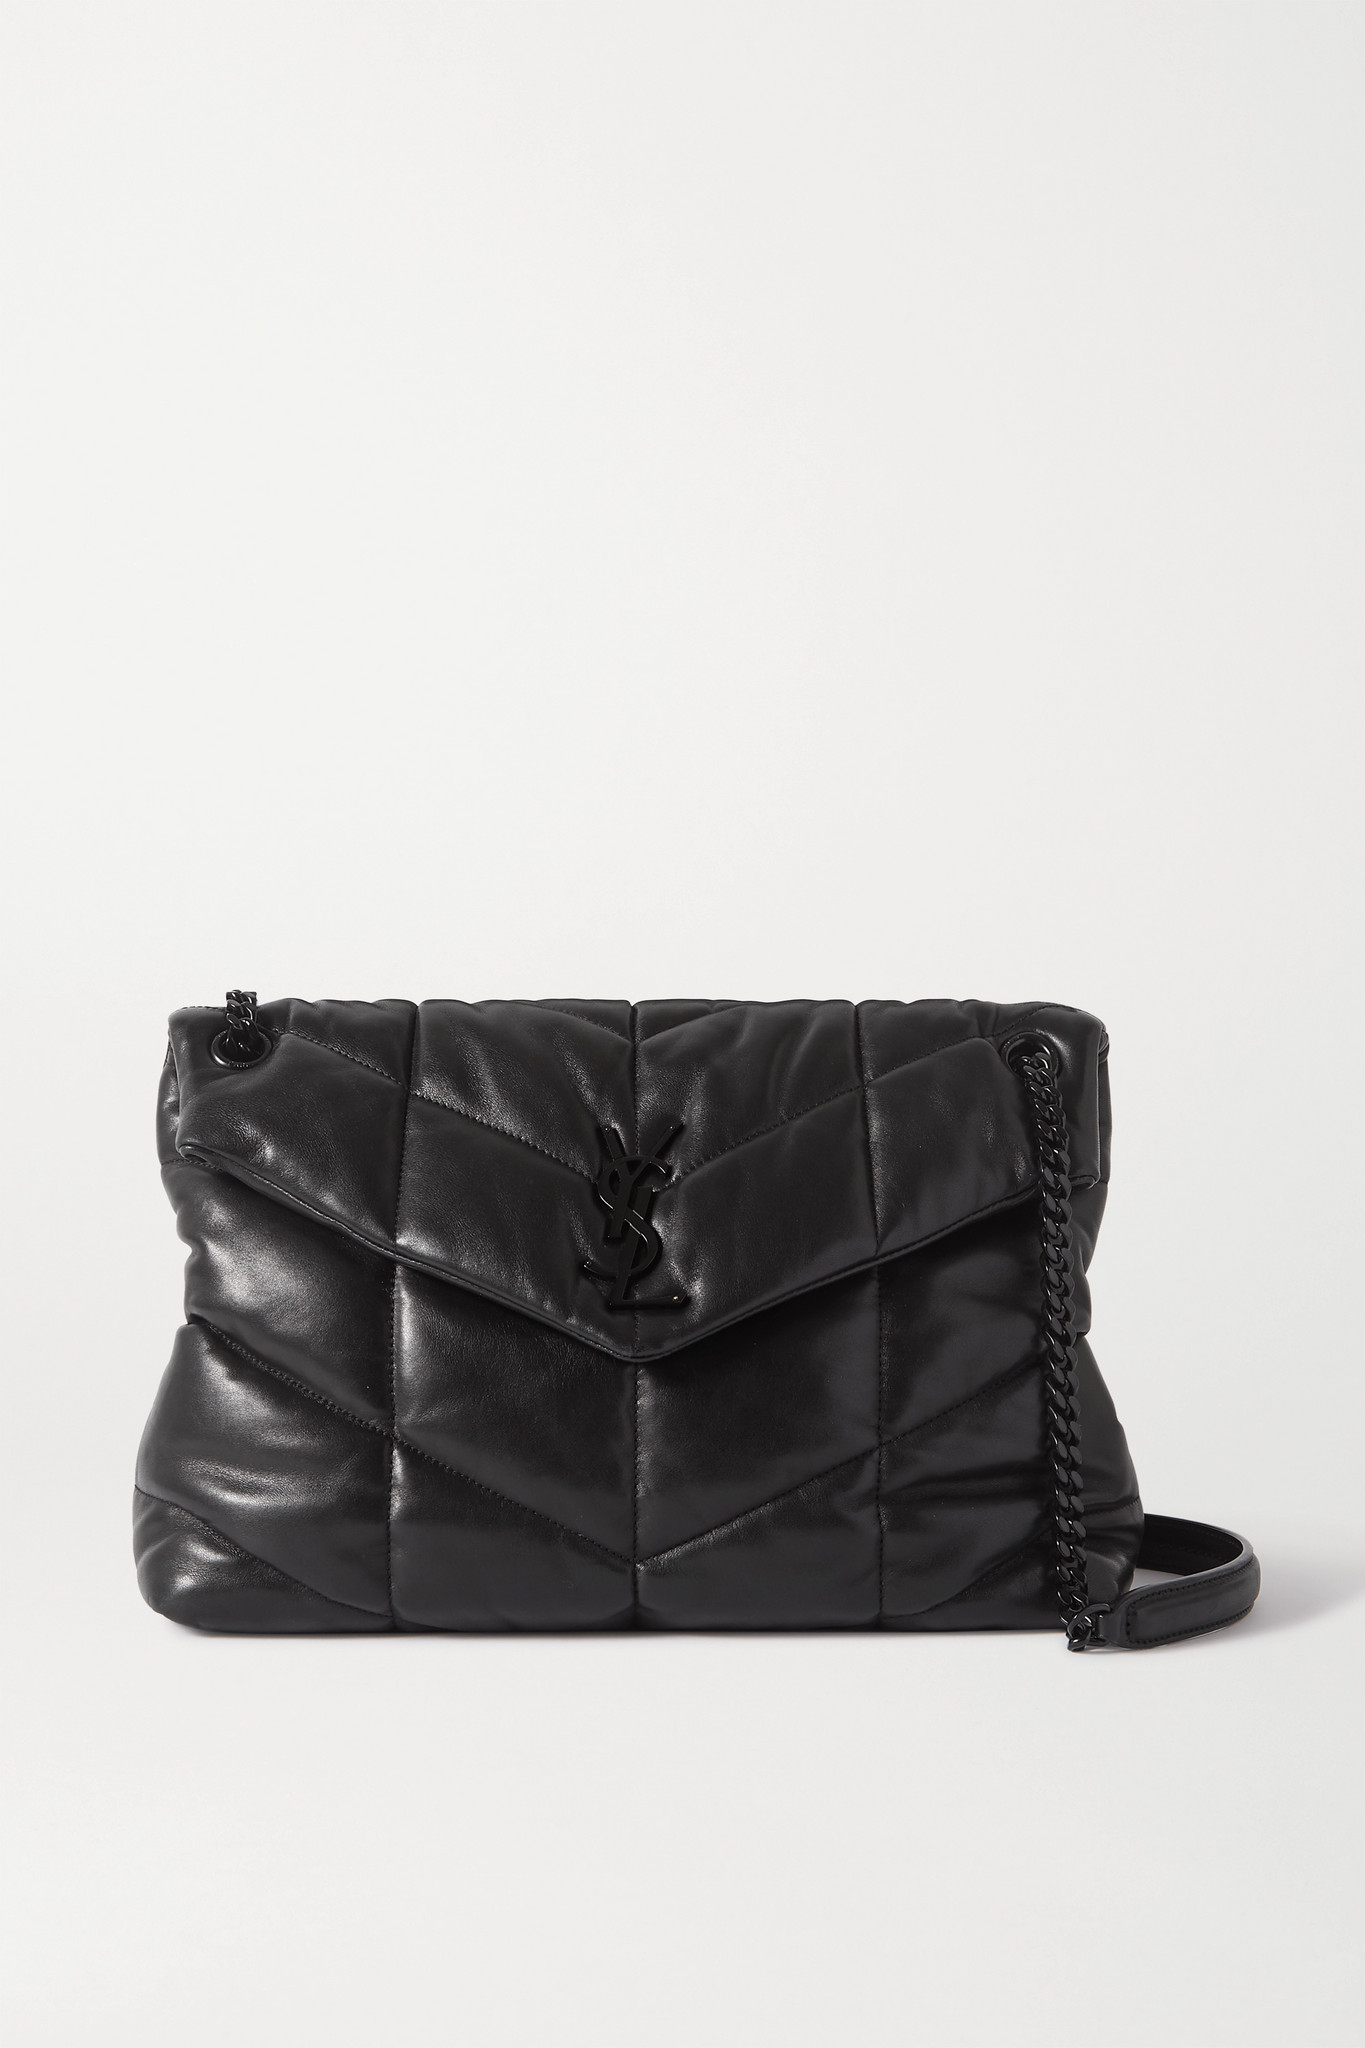 SAINT LAURENT - Loulou Puffer Quilted Leather Shoulder Bag - Black - one size